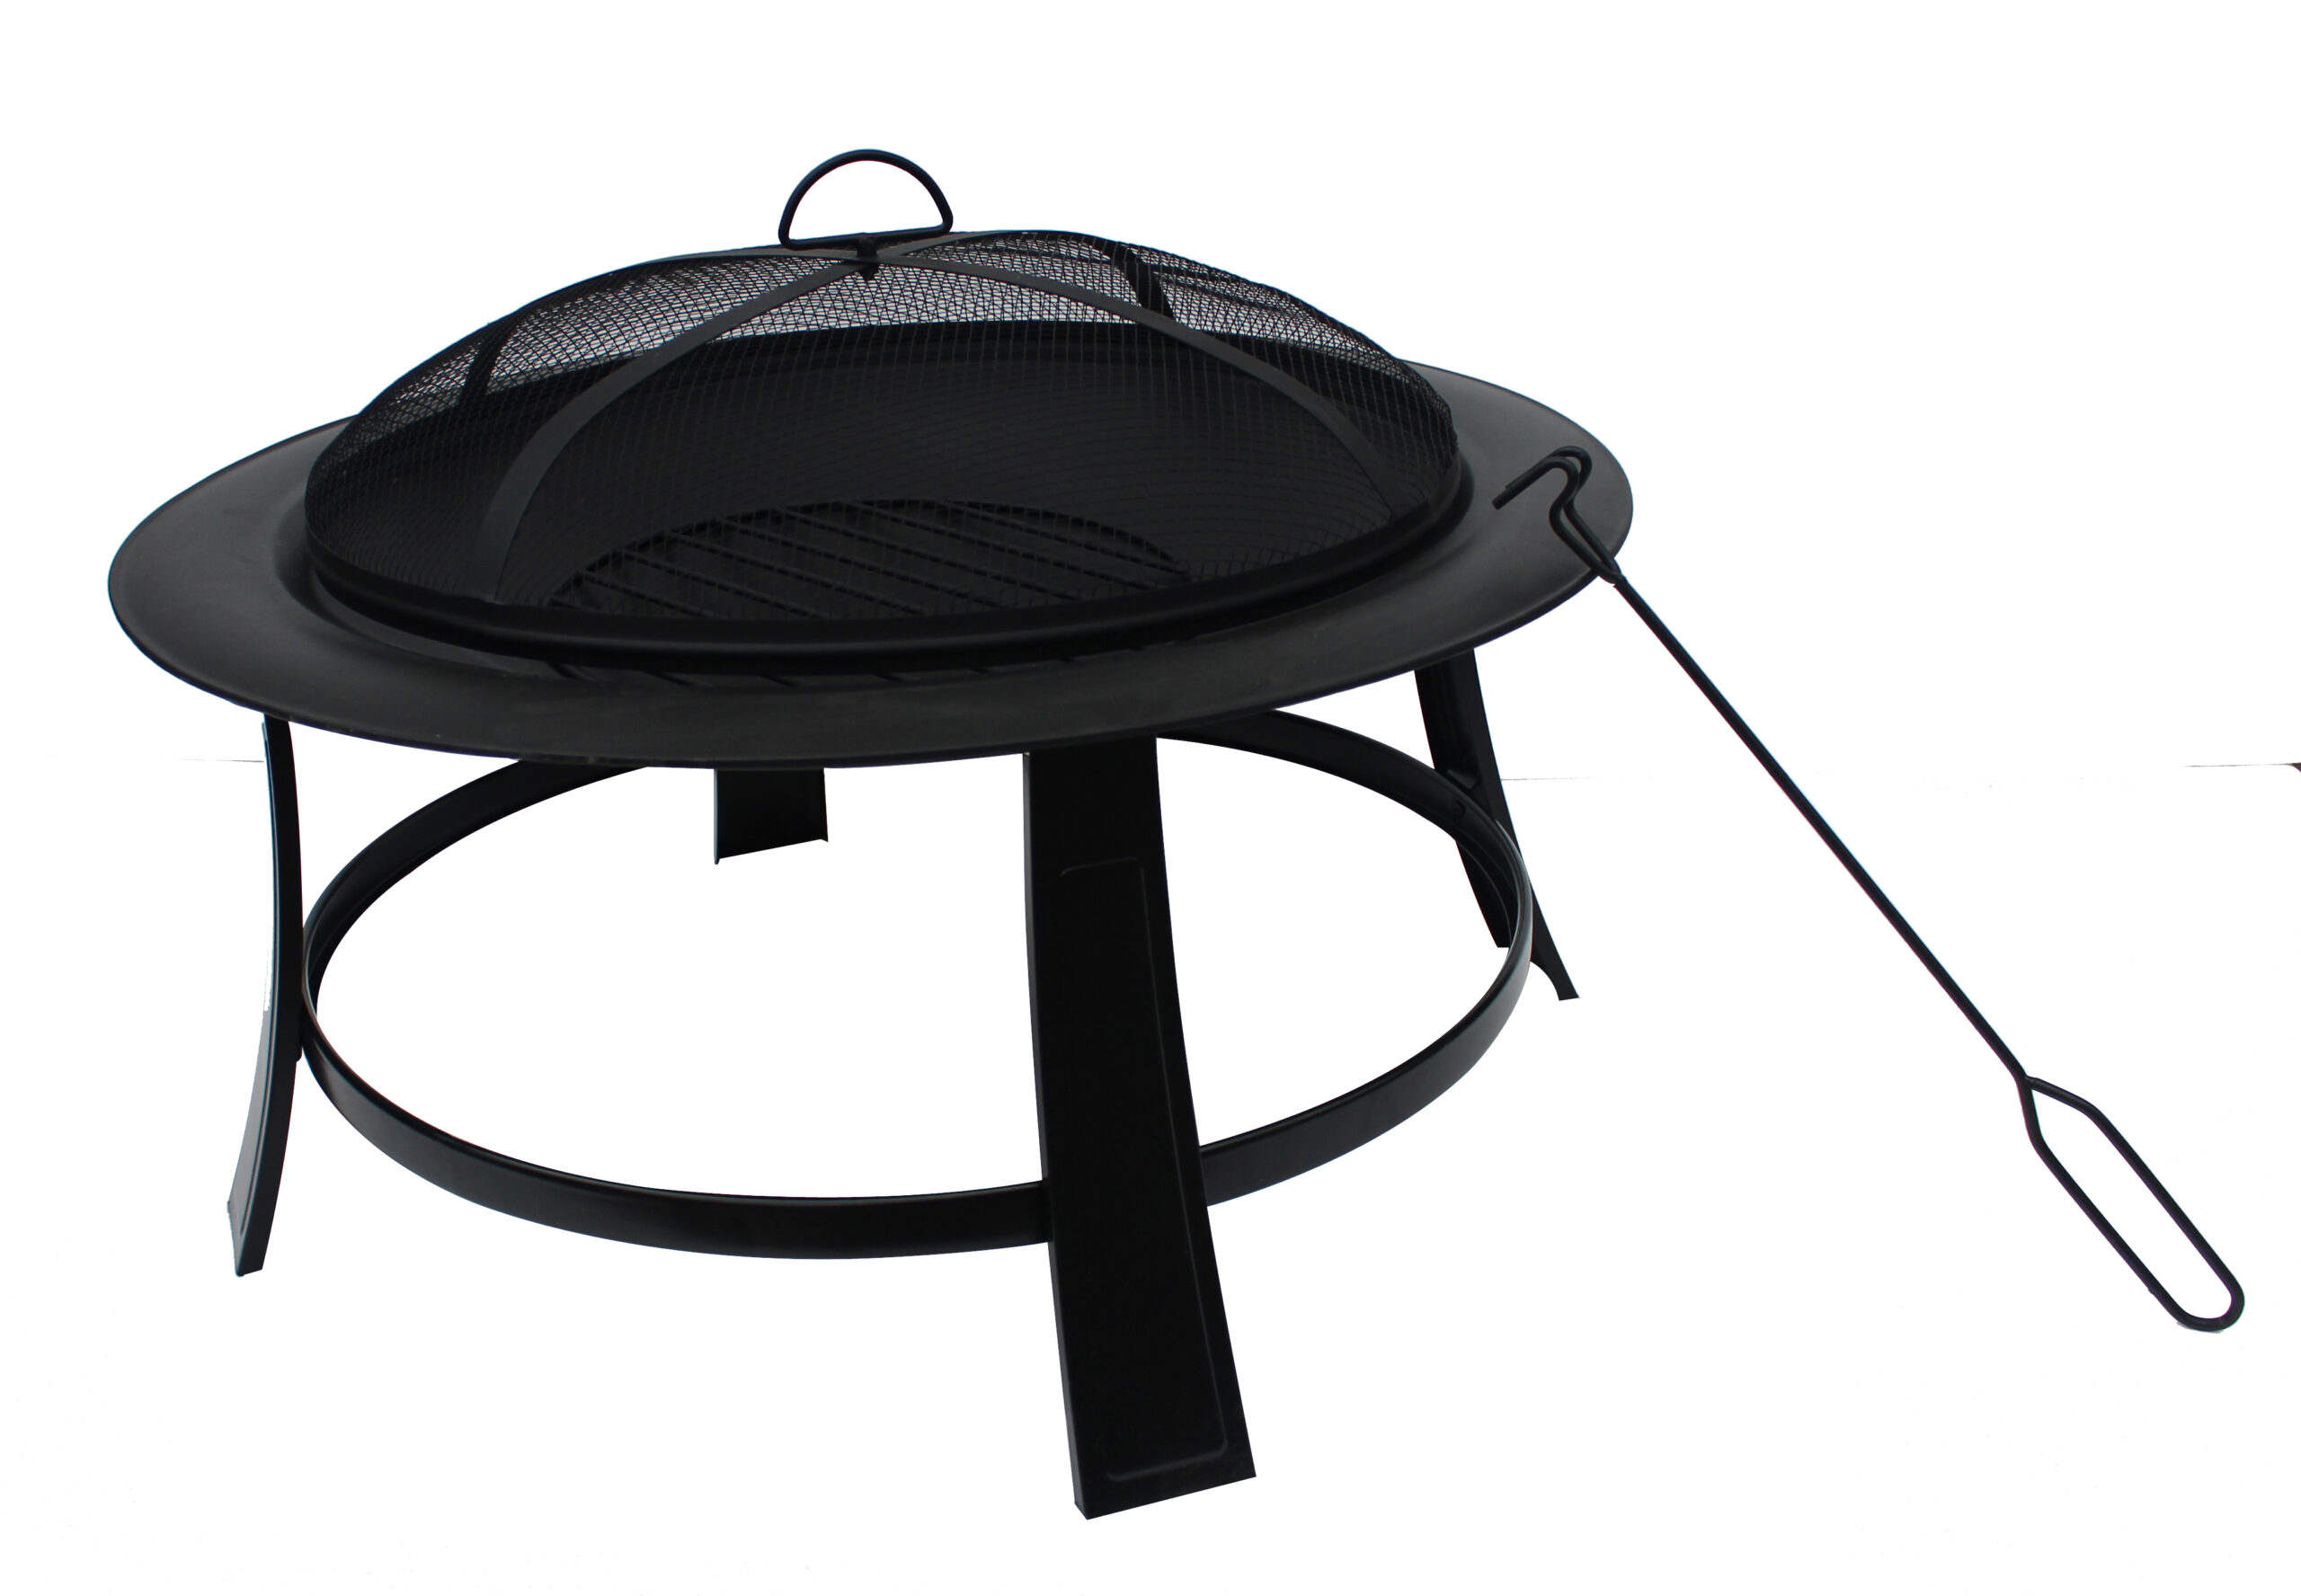 Nicole Miller Patio Portable 30 Inch Wood-Burning Foldable Fire Pit in Black Finish